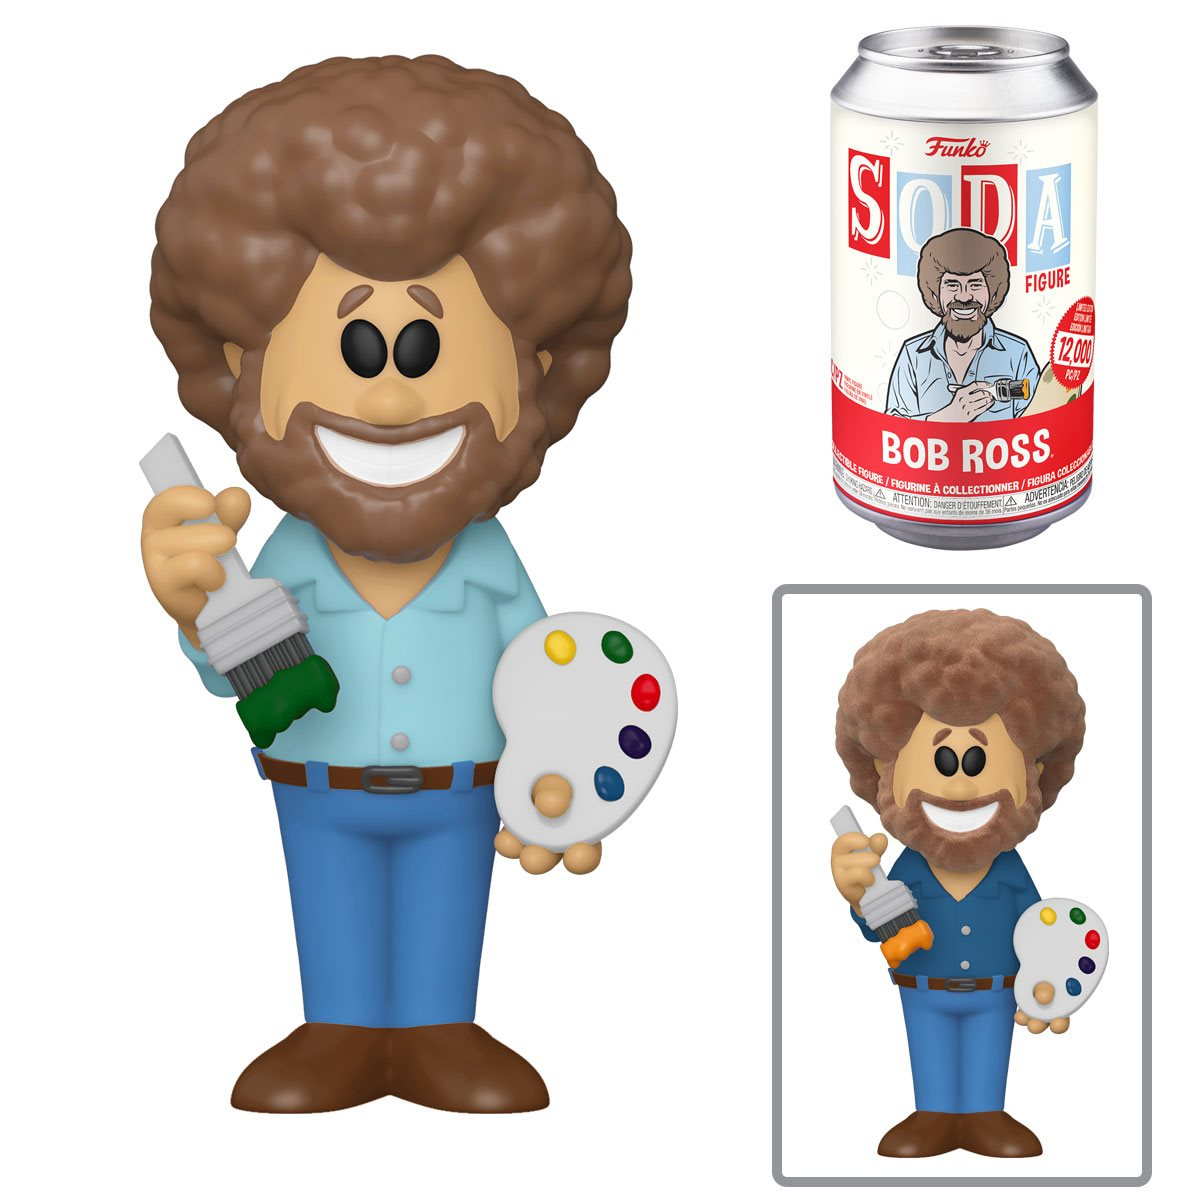 PRÉ VENDA: Lata Pop! Bob Ross: The Joy of Painting Vinyl Soda: ( Edição Limitada) - Funko